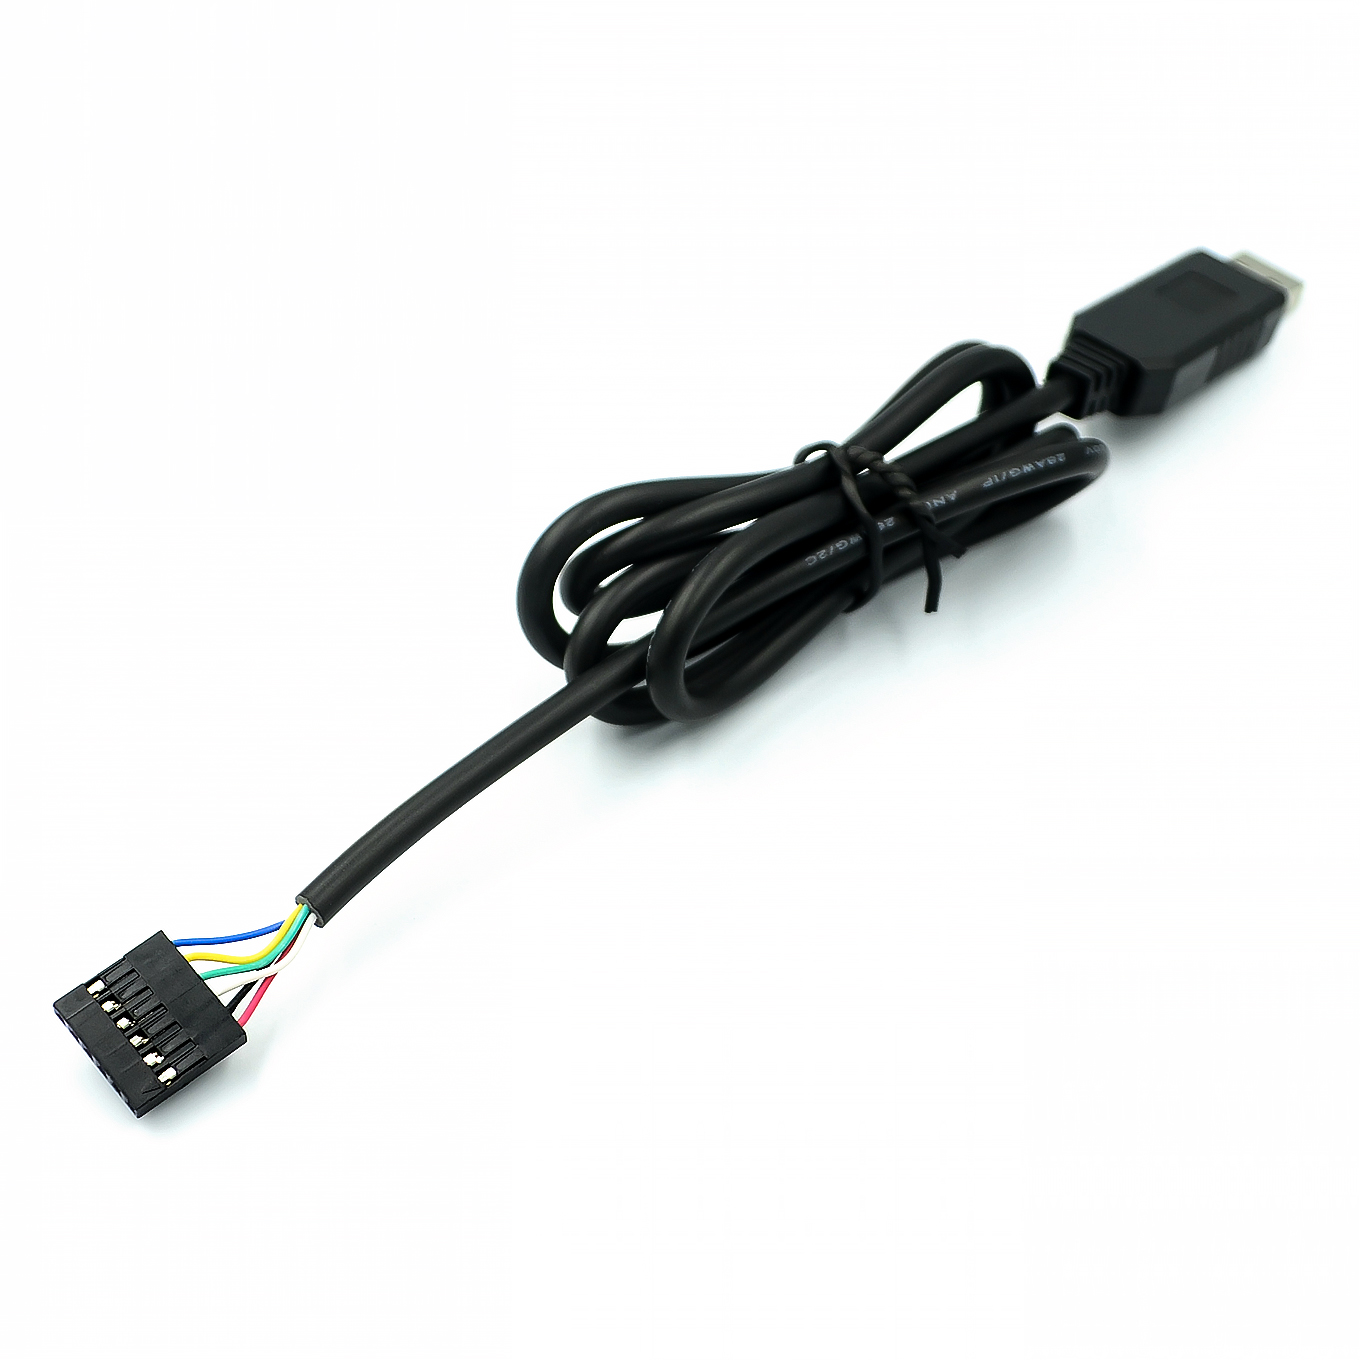 5PCS Better to <font><b>FT232RL</b></font> 6pin FT232BL USB to Serial adapter module USB TO TTL RS232 Cable FT232BL <font><b>CHIP</b></font> image